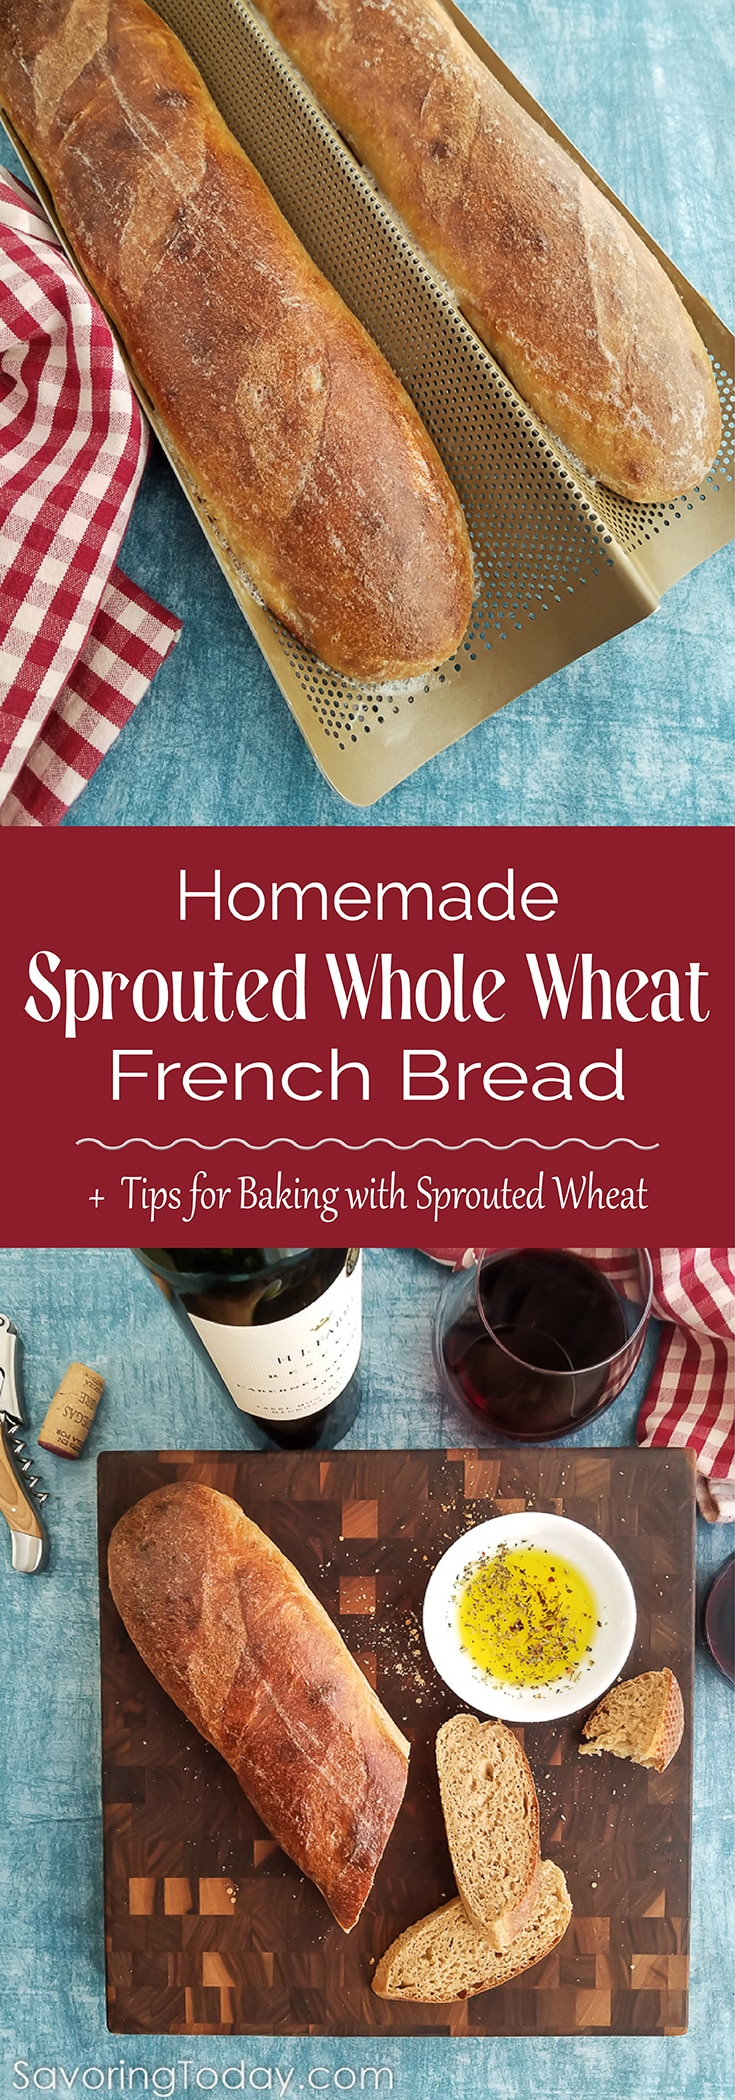 Learn important tips for baking with sprouted wheat by making this delicious Sprouted Wheat French Bread recipe. You'll love the texture and chewy crust of this bread.